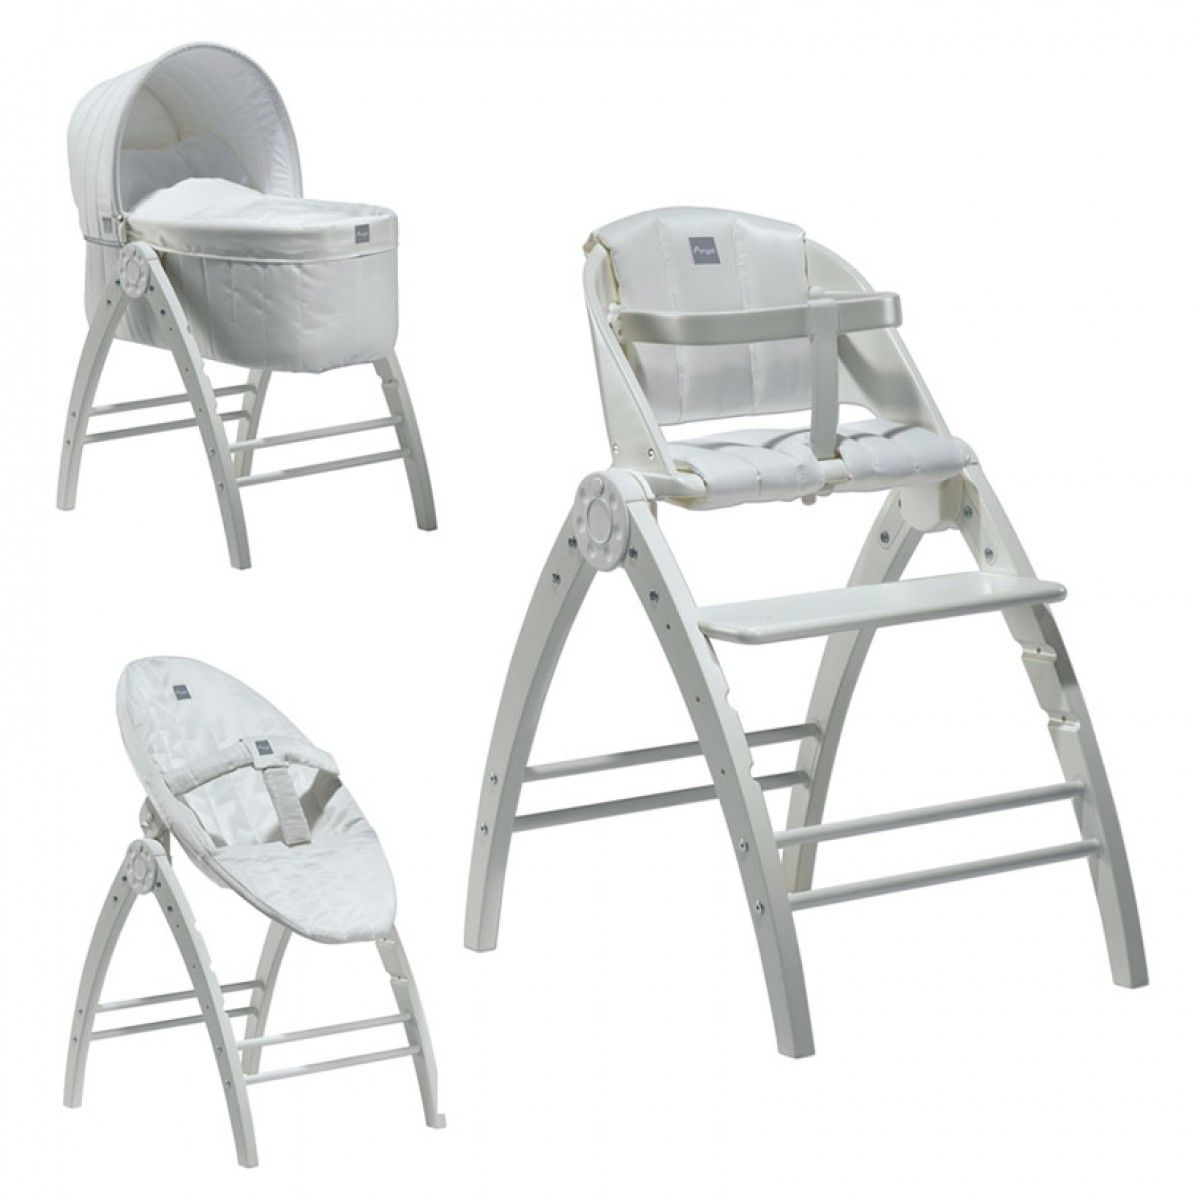 The Babydan Angel 3 In 1 Crib High Chair Recliner Is An Innovative Concept From Uniting Functions Of A Highchair And One